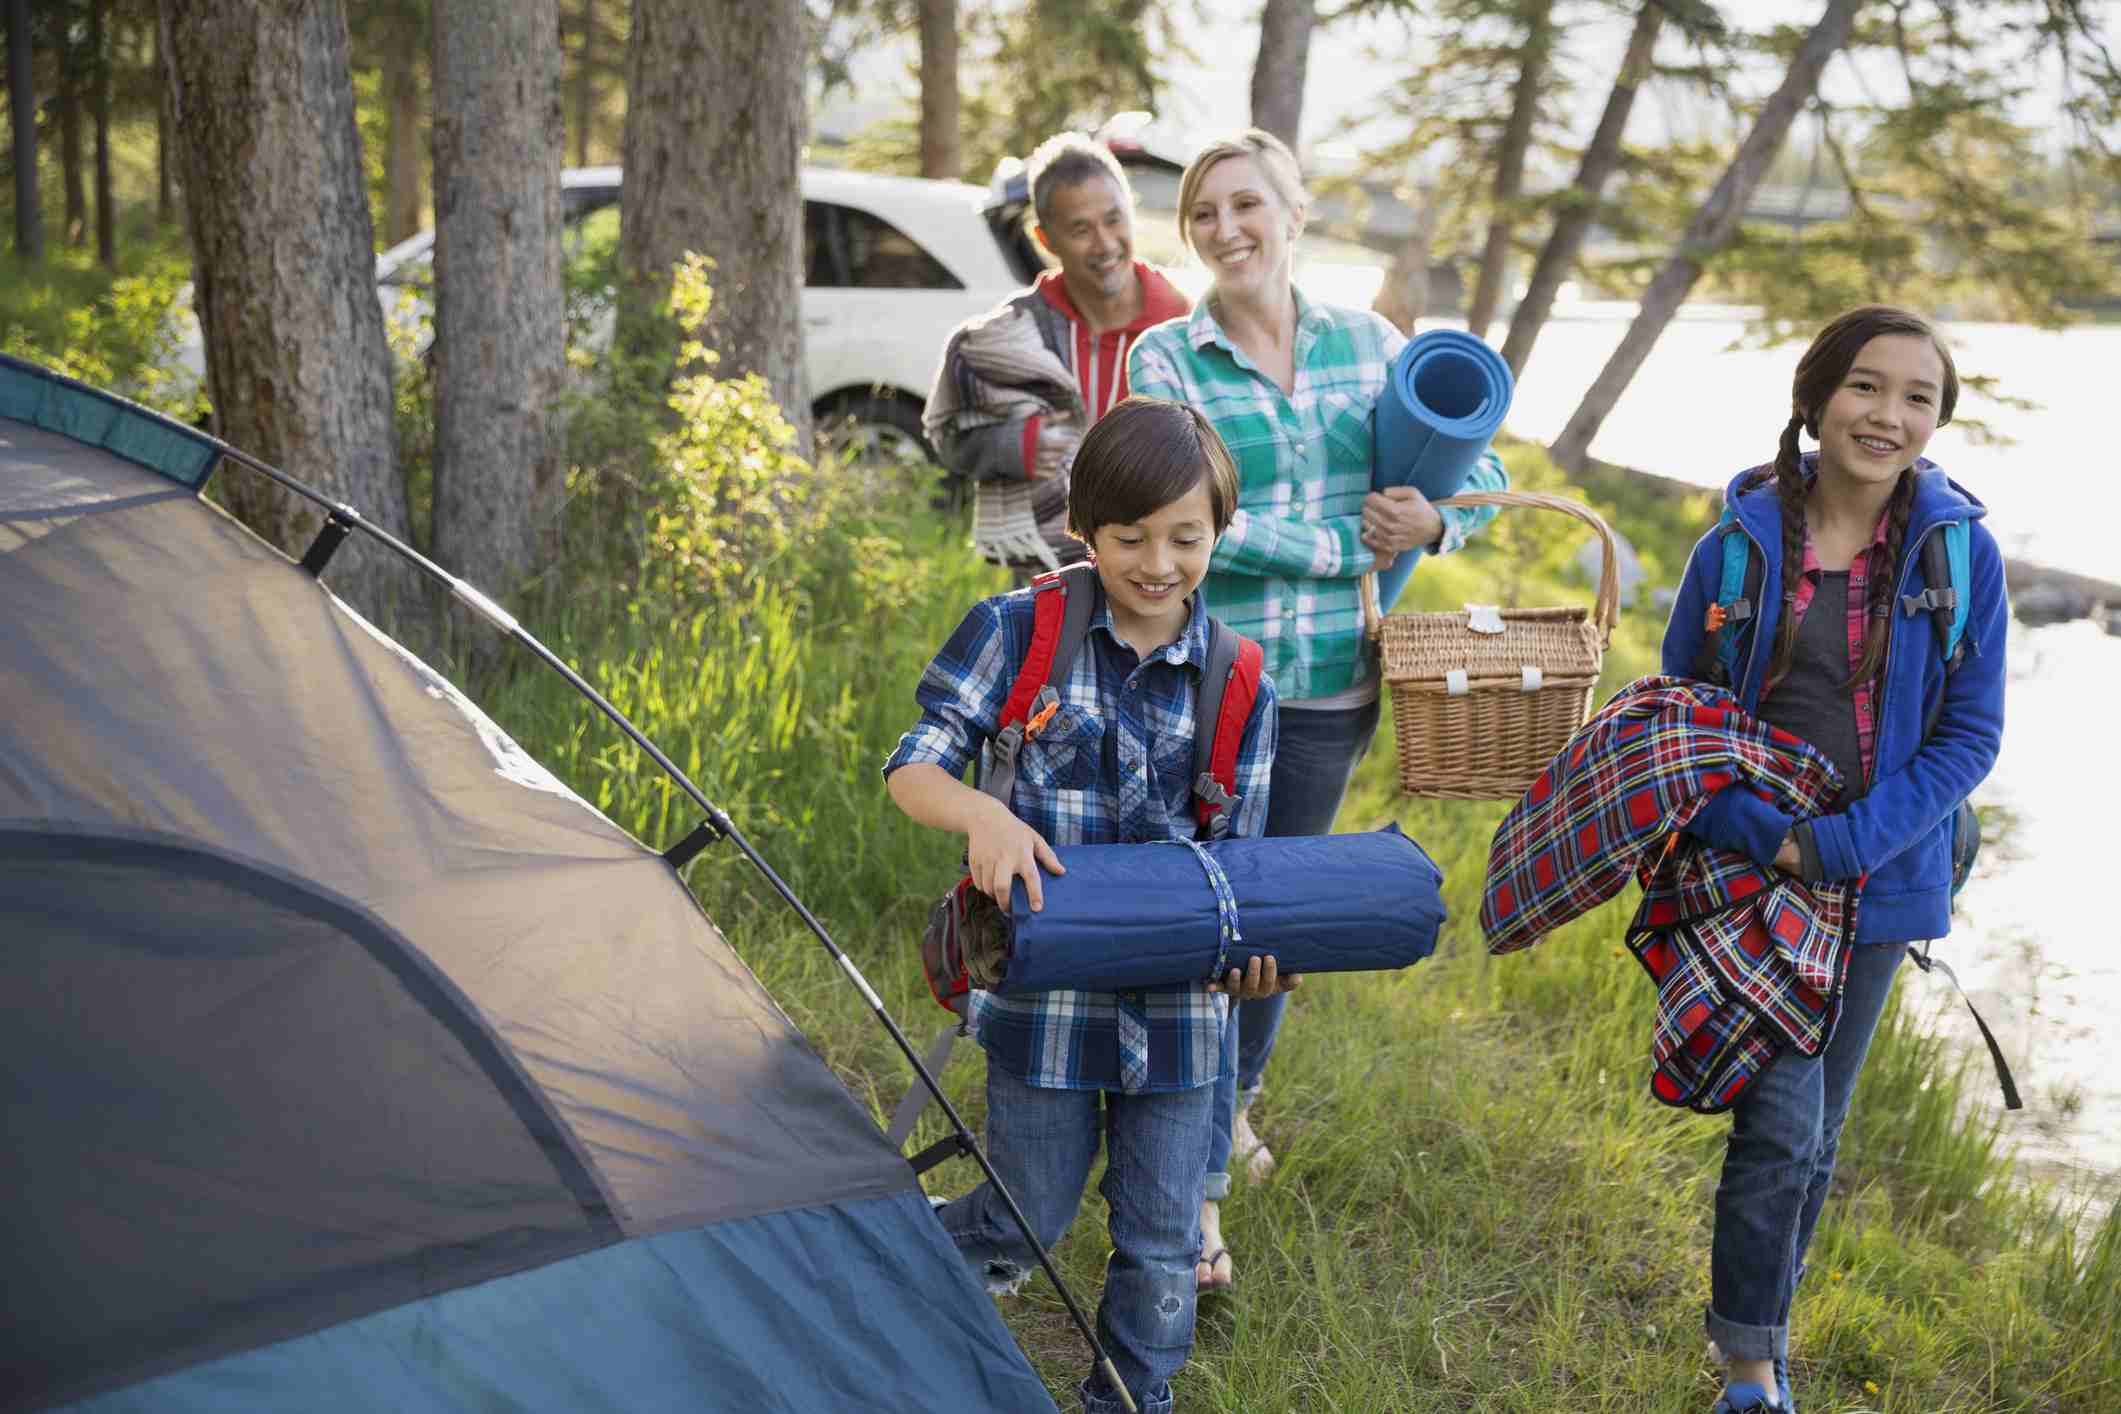 Setting Up a Campsite